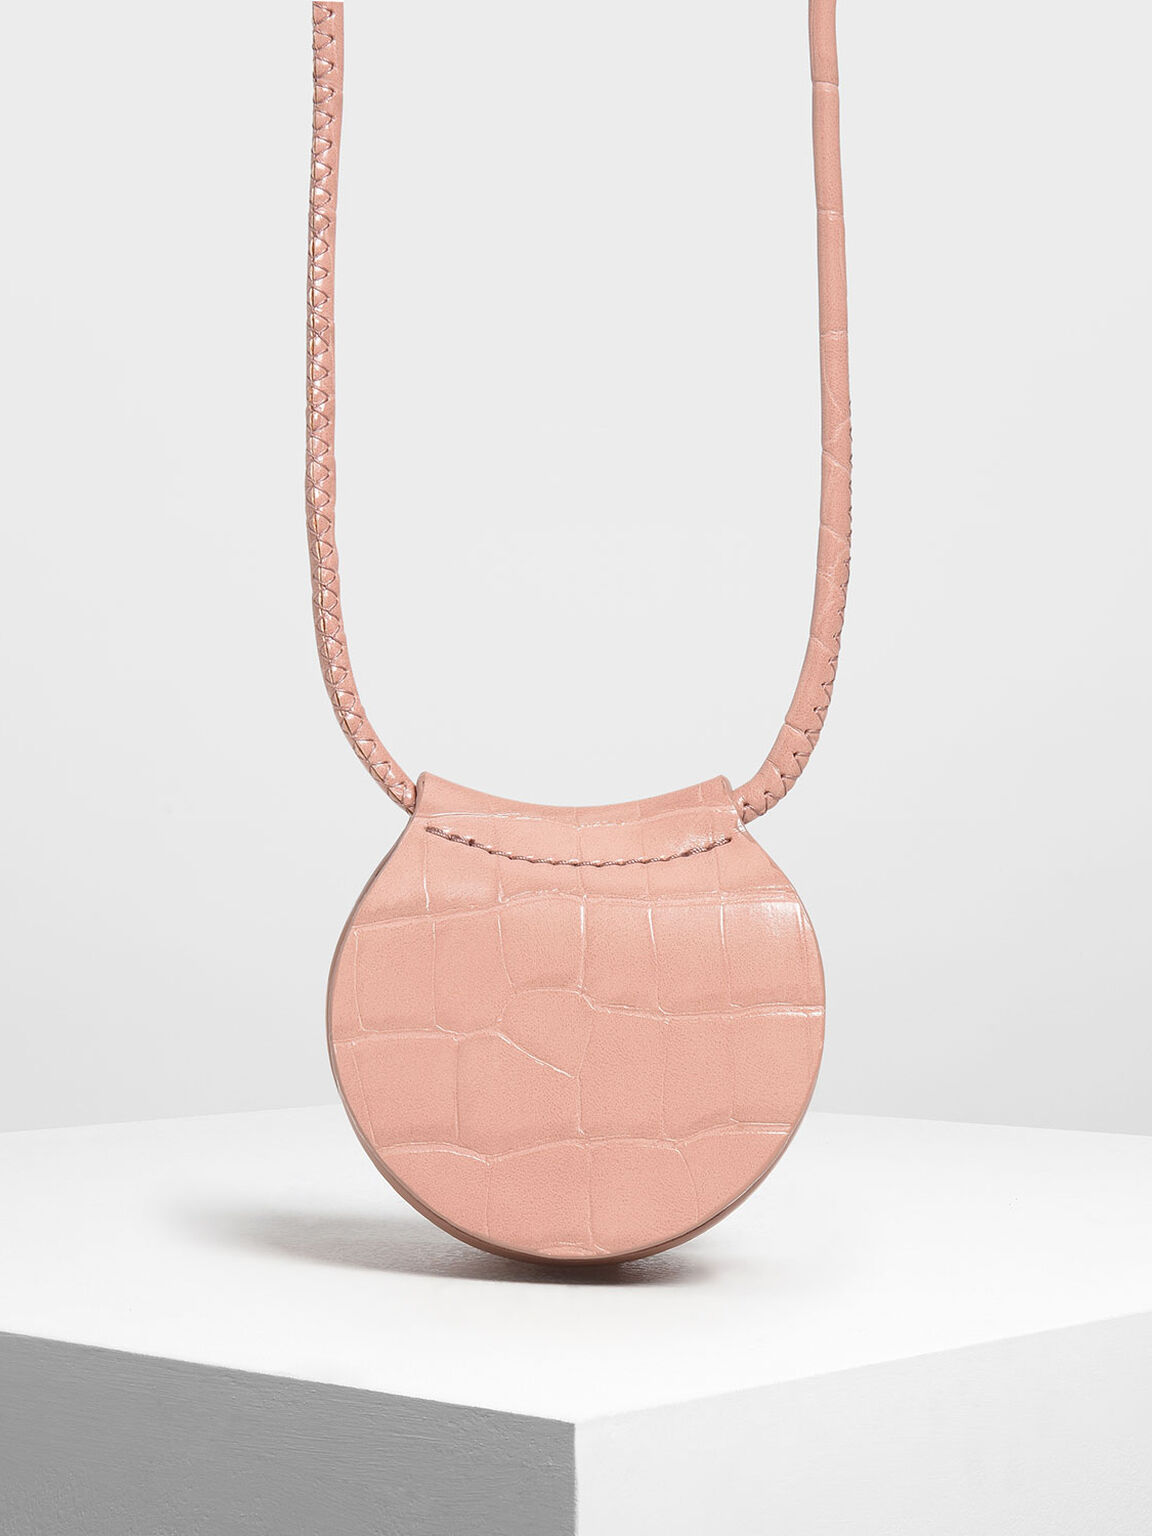 Croc-Effect Necklace Bag, Pink, hi-res